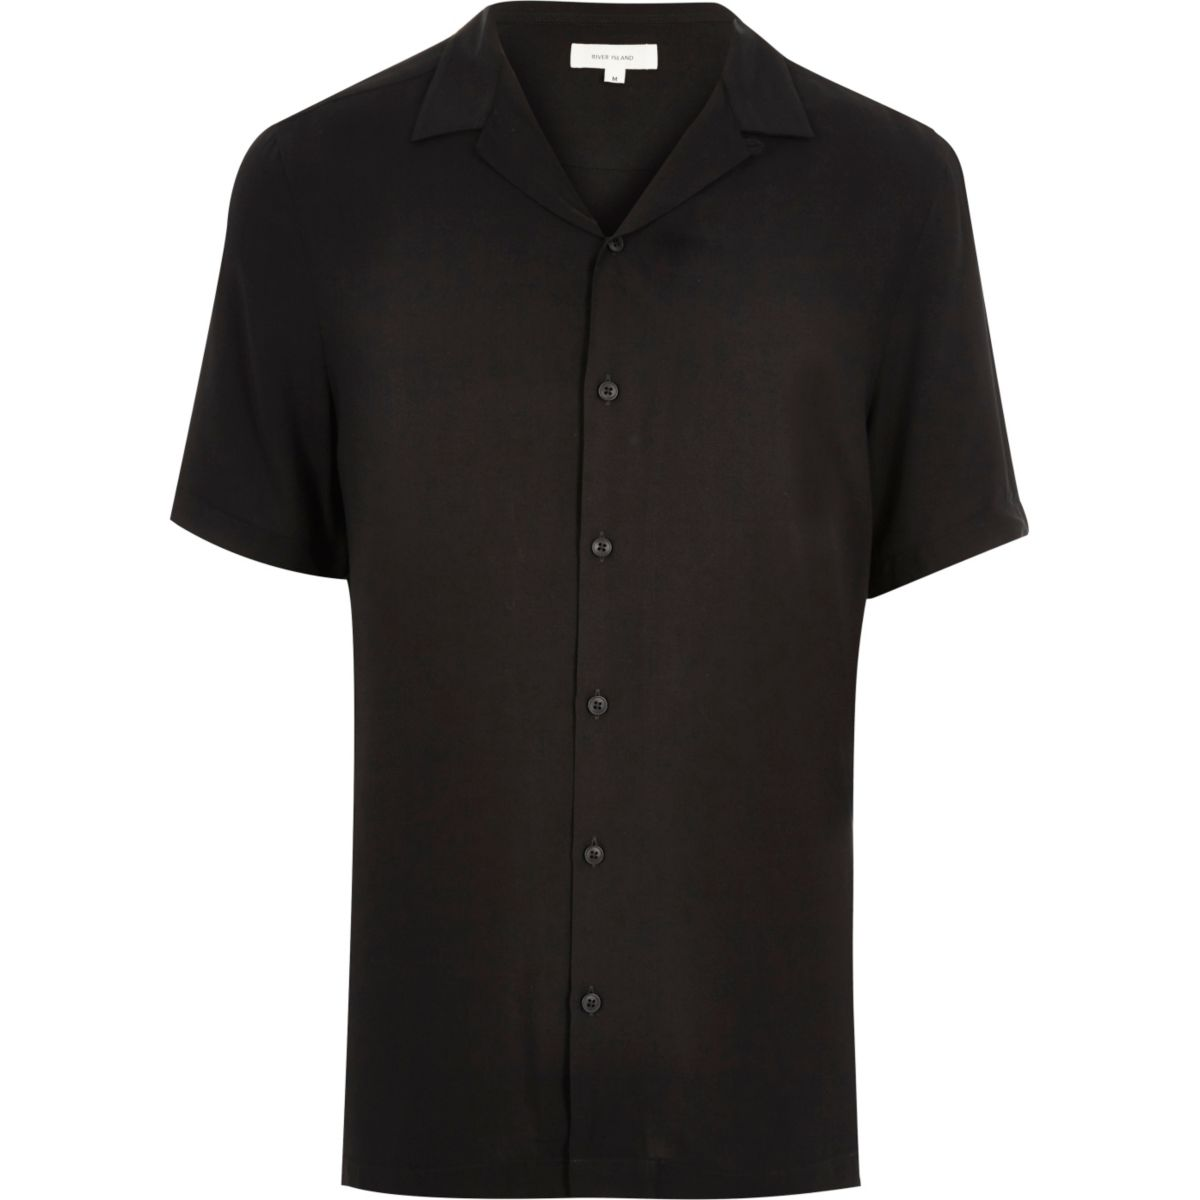 Black revere collar short sleeve shirt